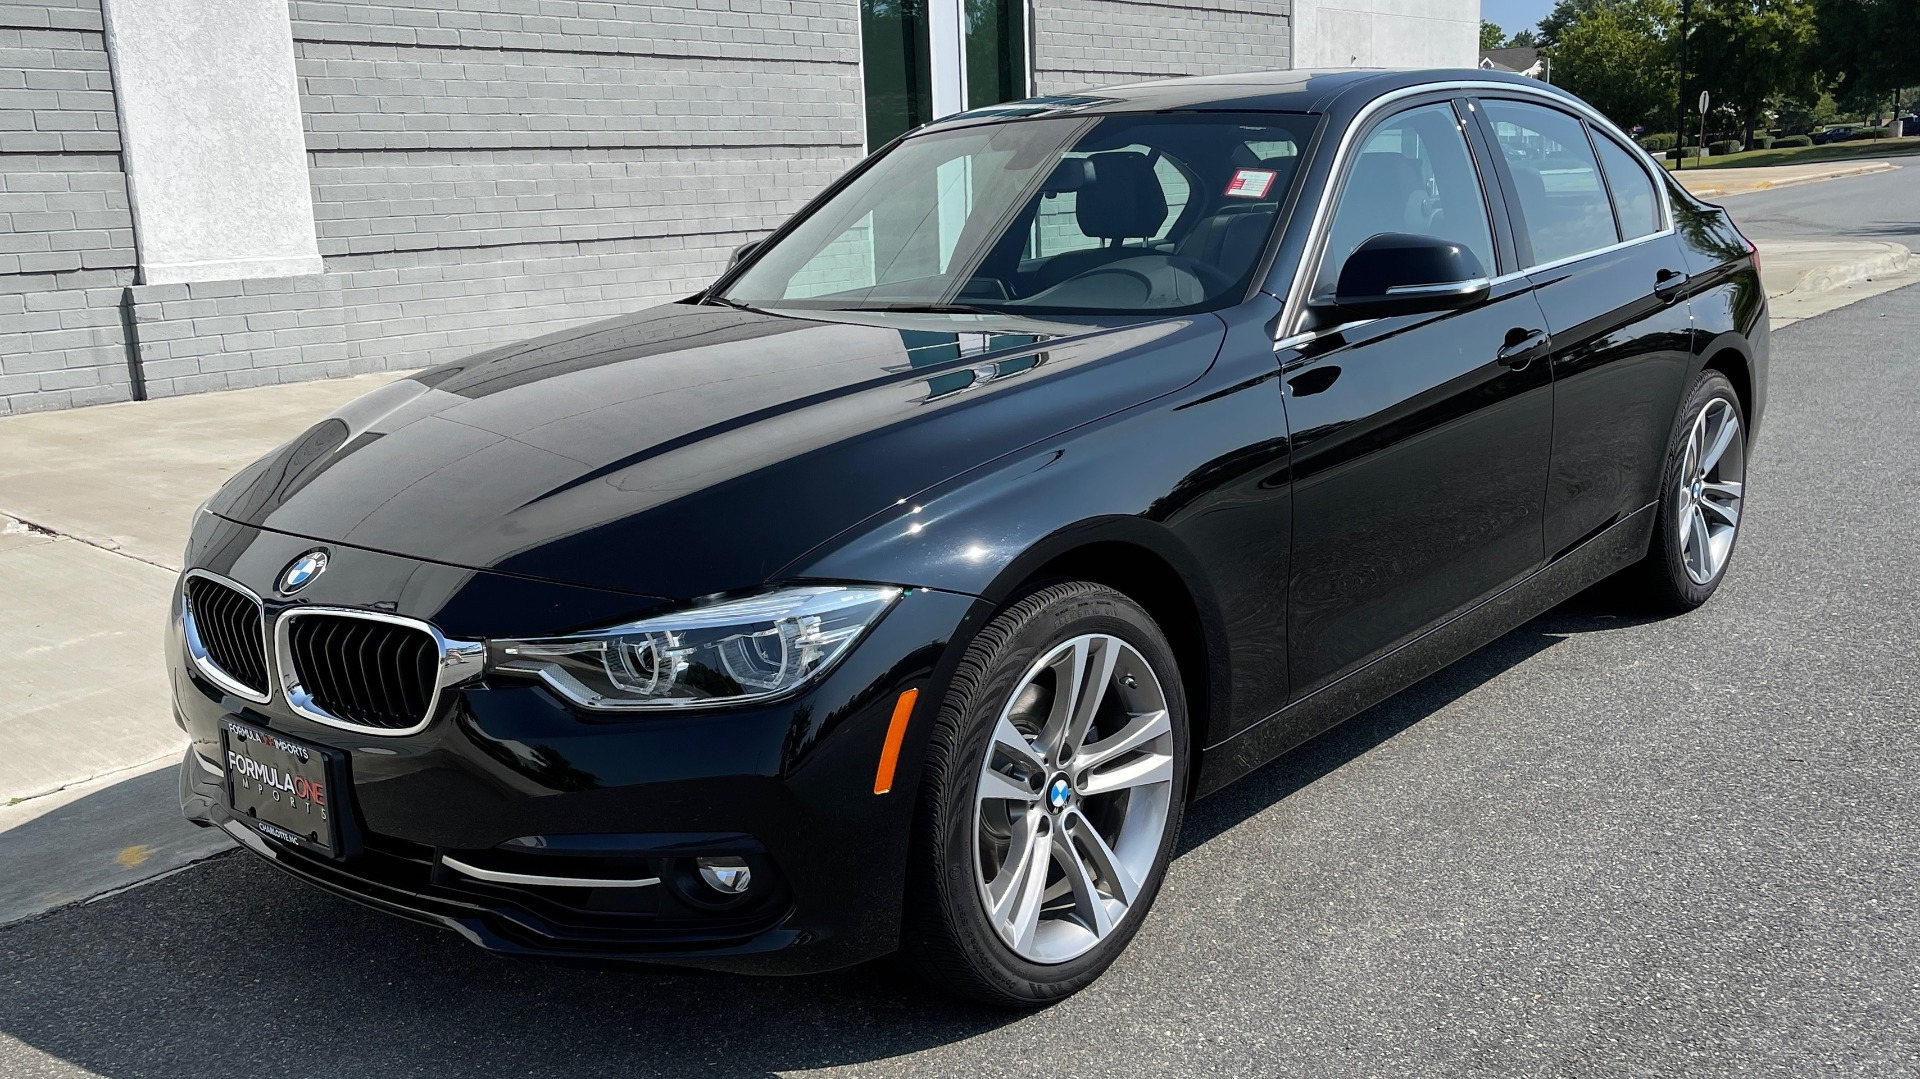 Used 2018 BMW 3 SERIES 330I XDRIVE / CONV PKG / SUNROOF / HTD STS / ABSD / REARVIEW for sale $30,695 at Formula Imports in Charlotte NC 28227 3